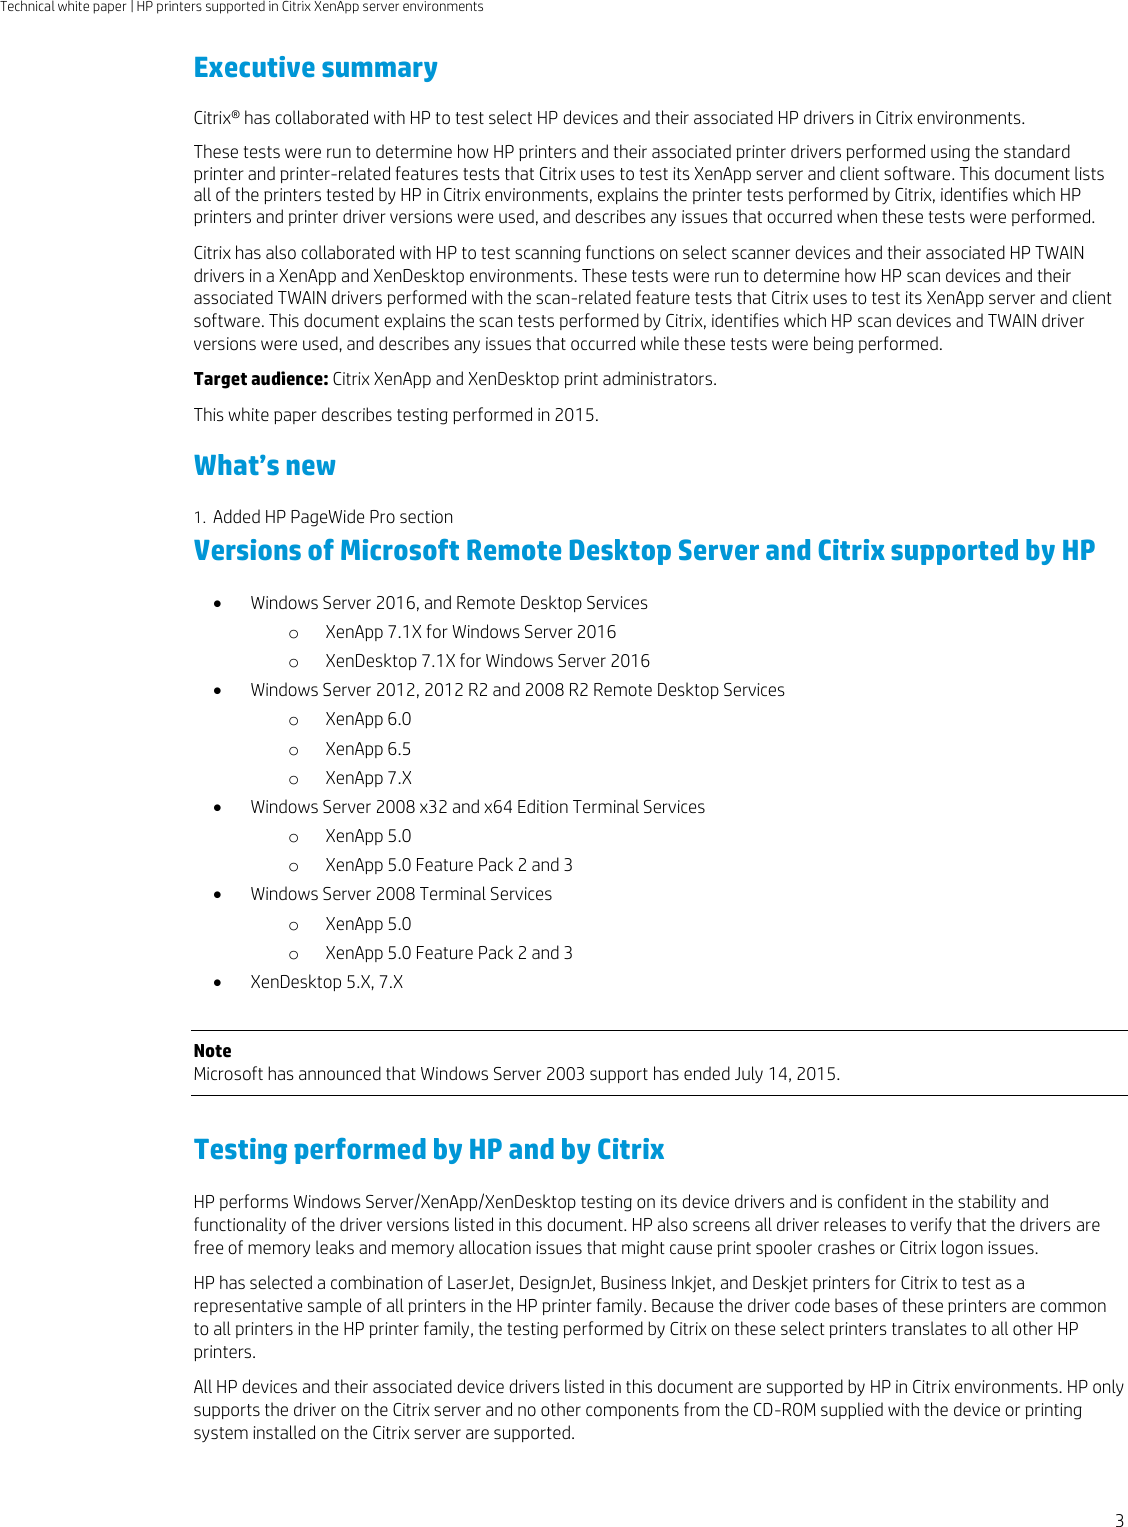 HP UPD Printers And Scanners Supported In Citrix Xen Desktop